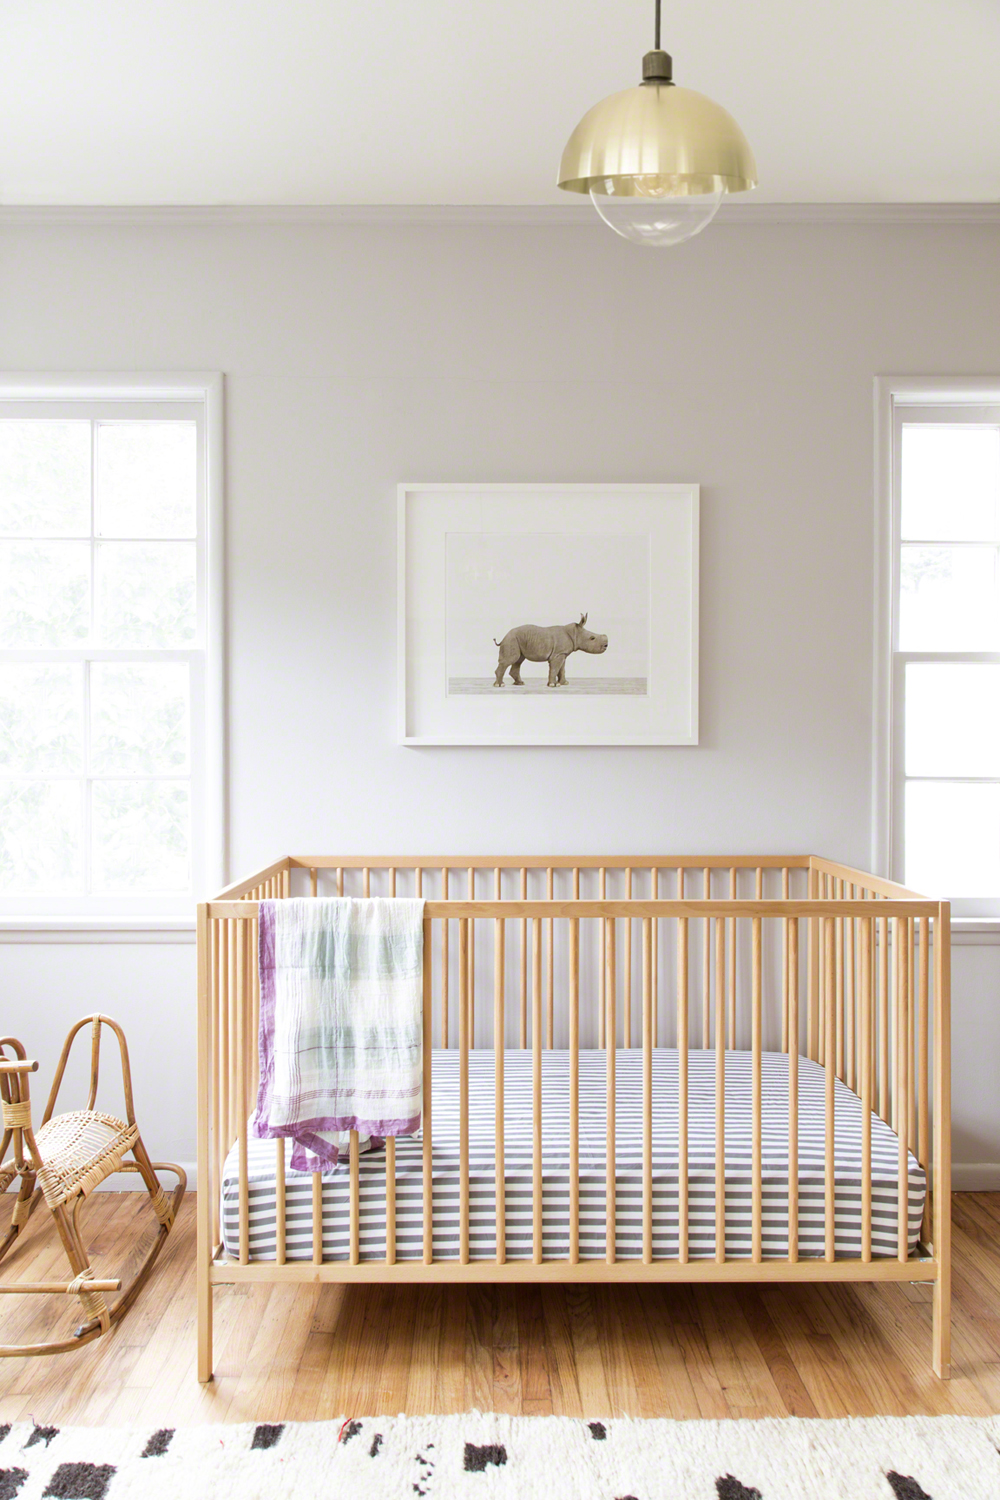 Awesome Sharon Montrose Nursery | Lonny.com